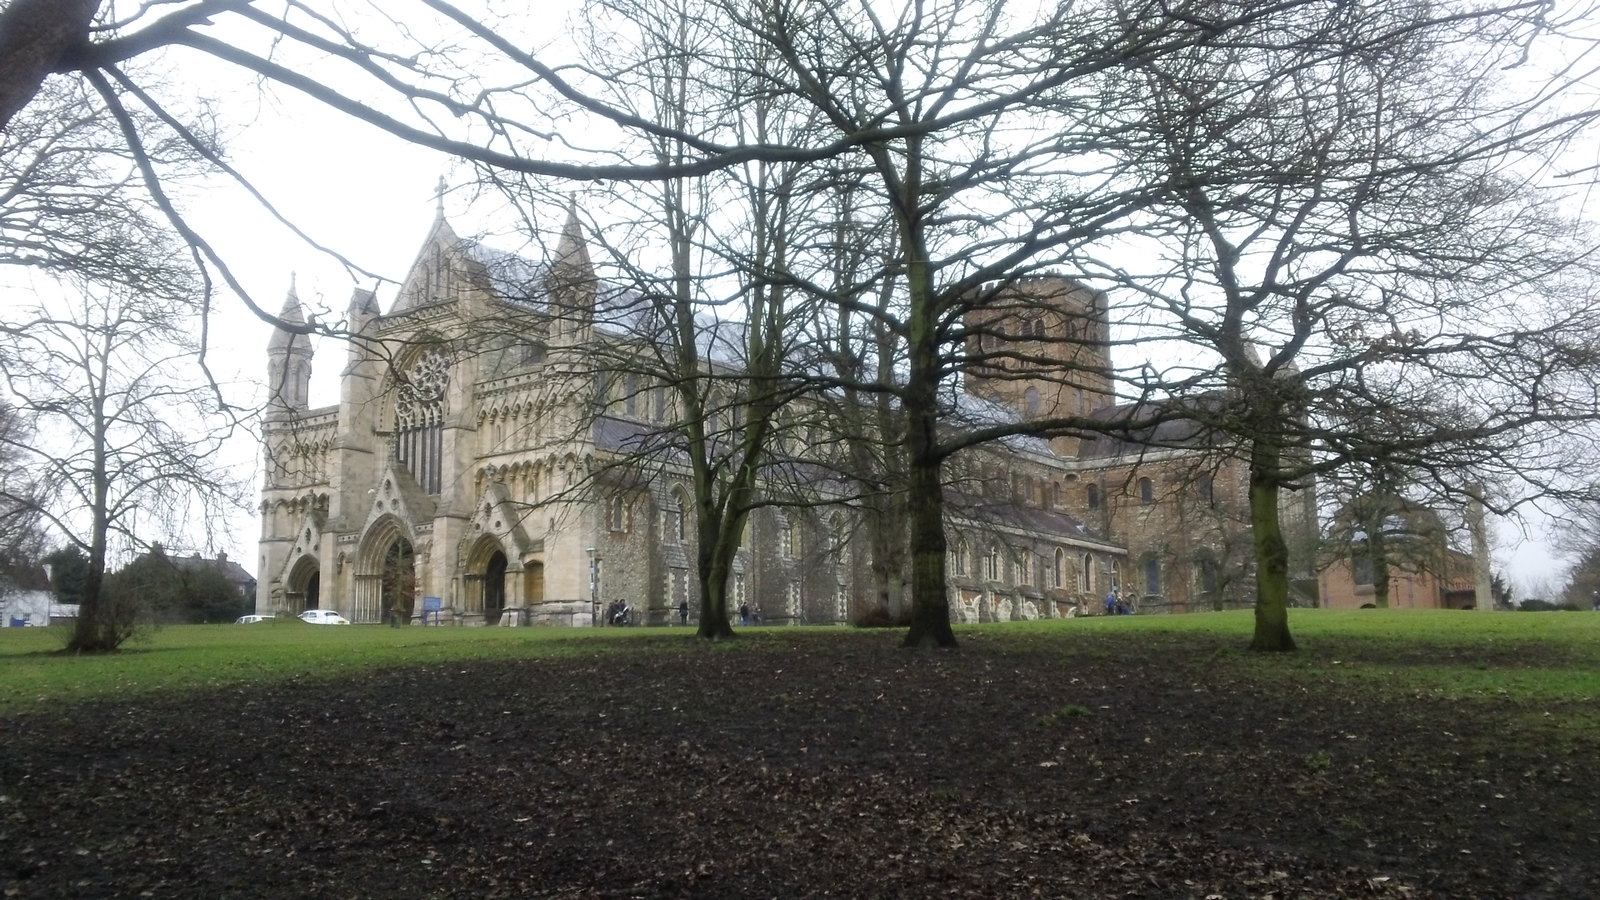 St Albans Cathedral in the not-so-bleak midwinter tea & cakes awaiteth.....